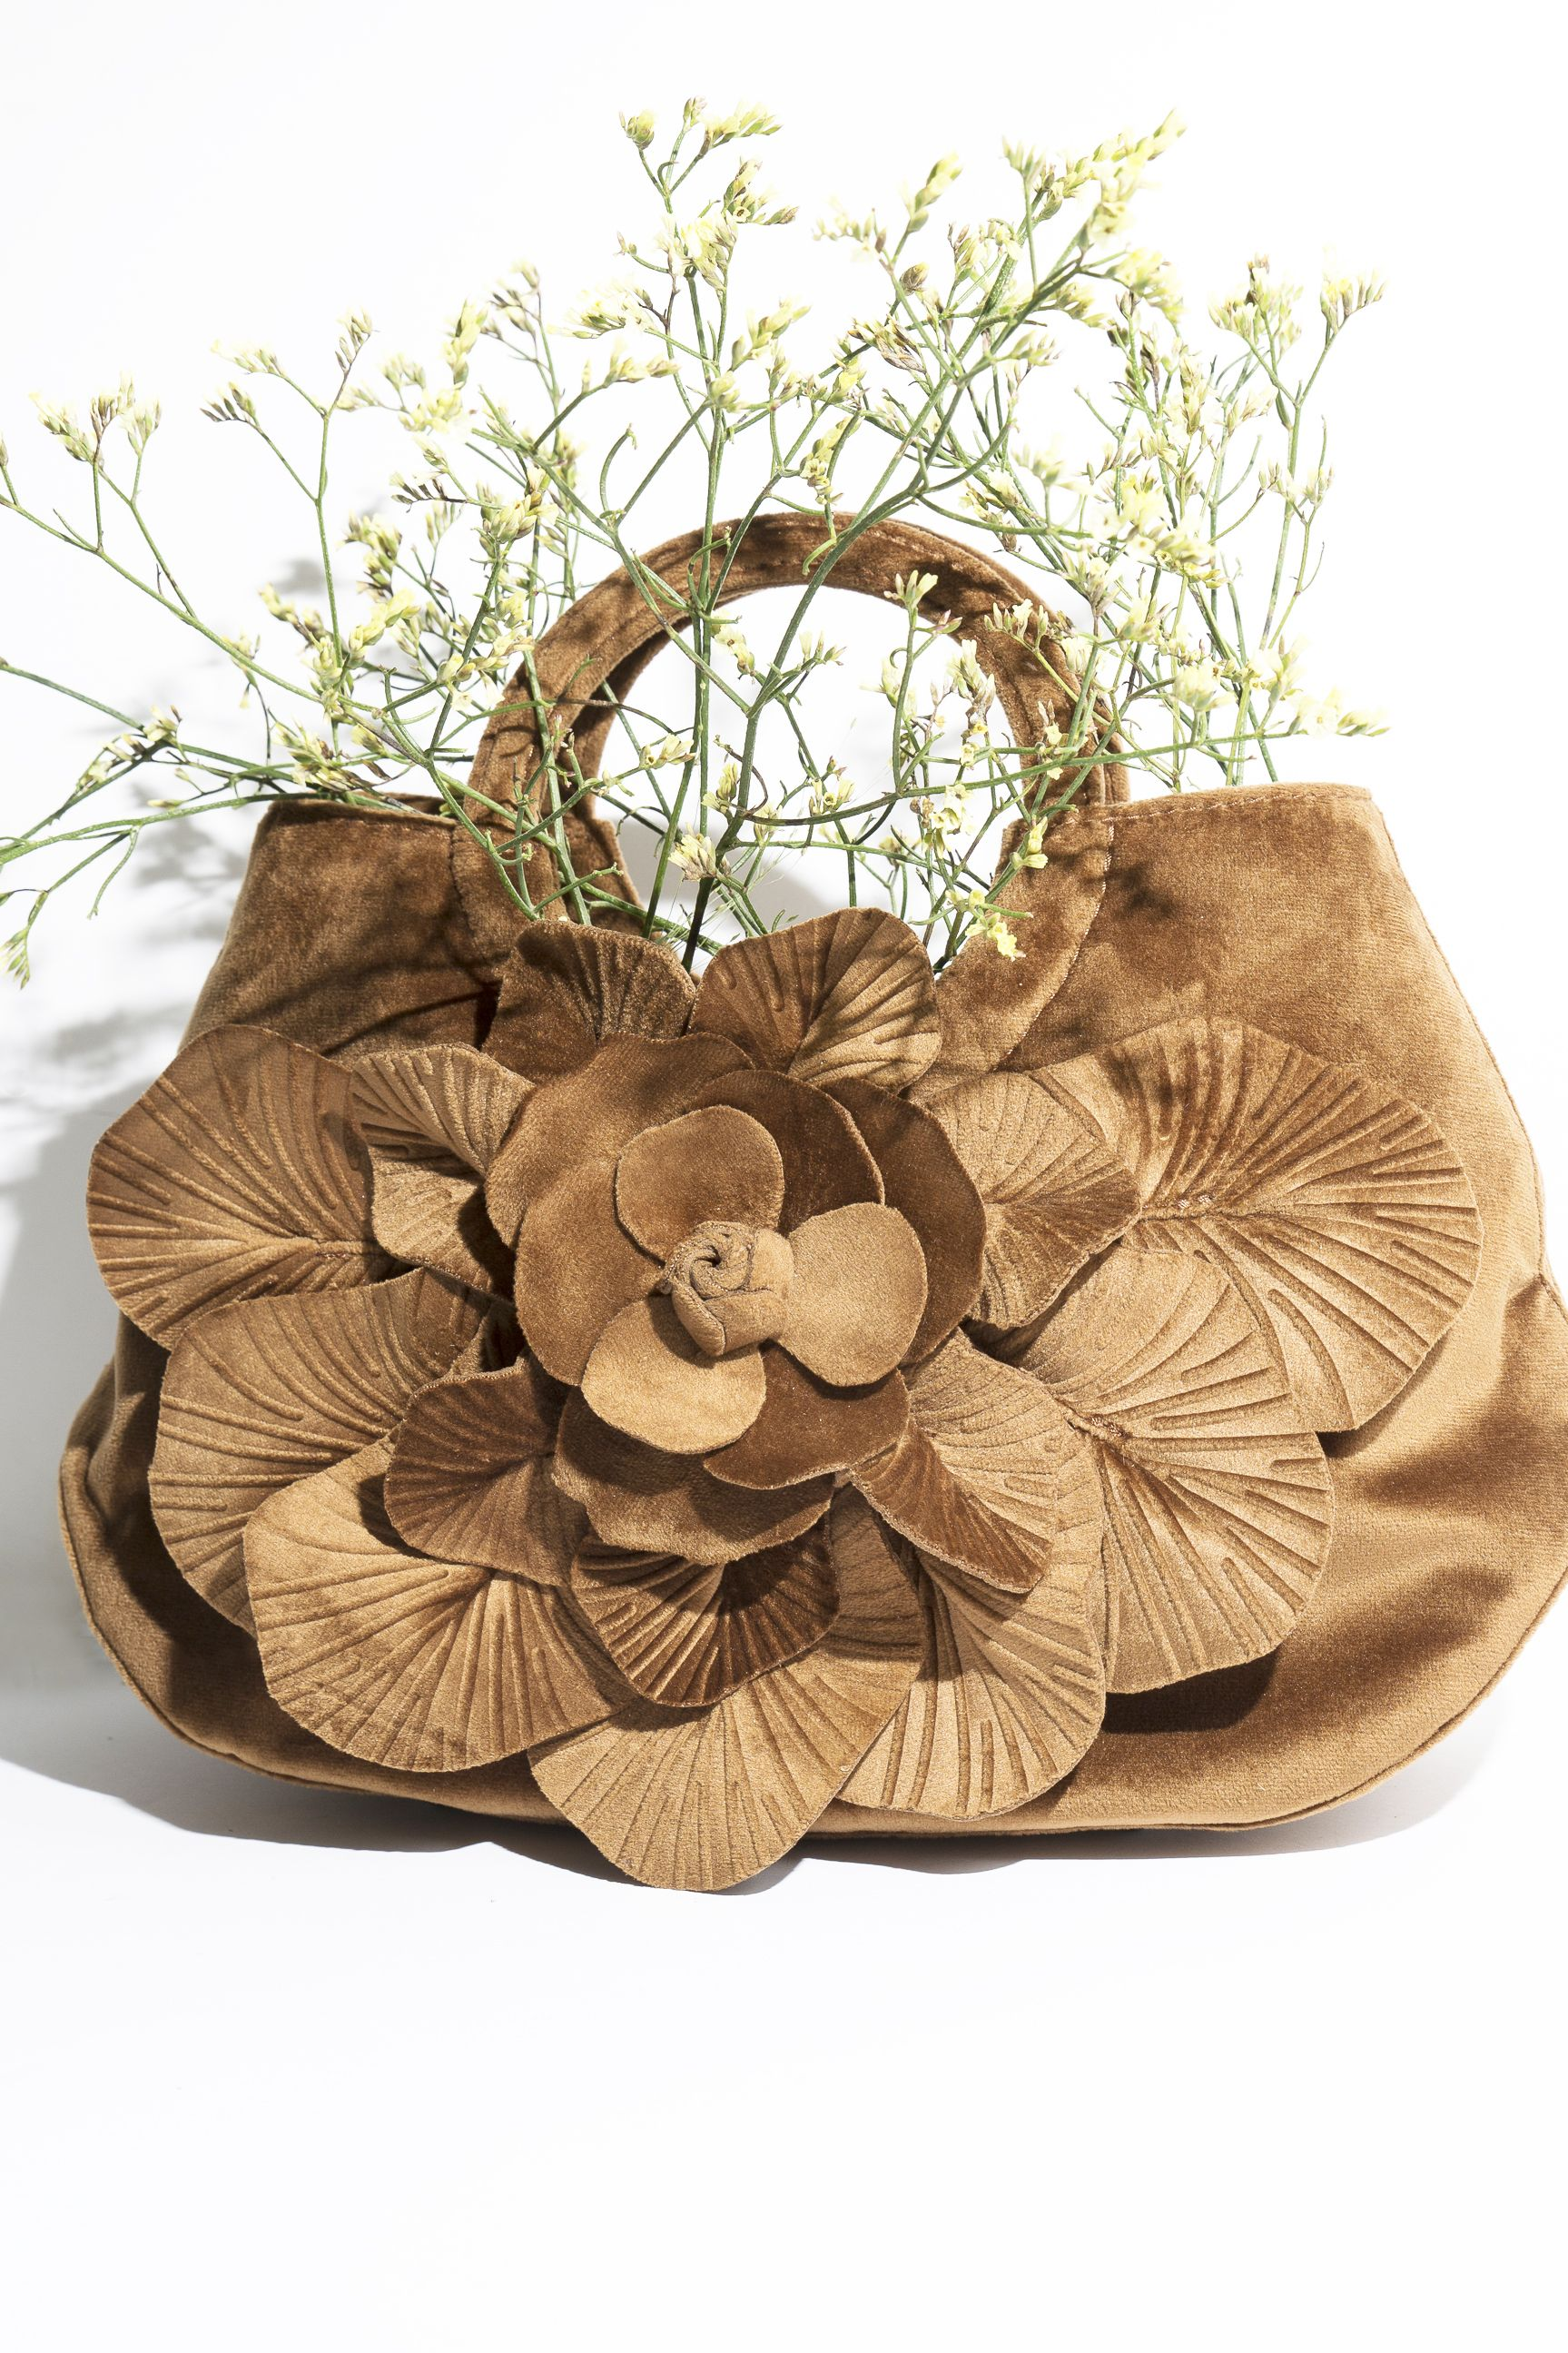 The Scarlet Velvet Is An Anne Fontaine Signature Handbag In With Over Sized Flower For More Handbags At Annefontaine